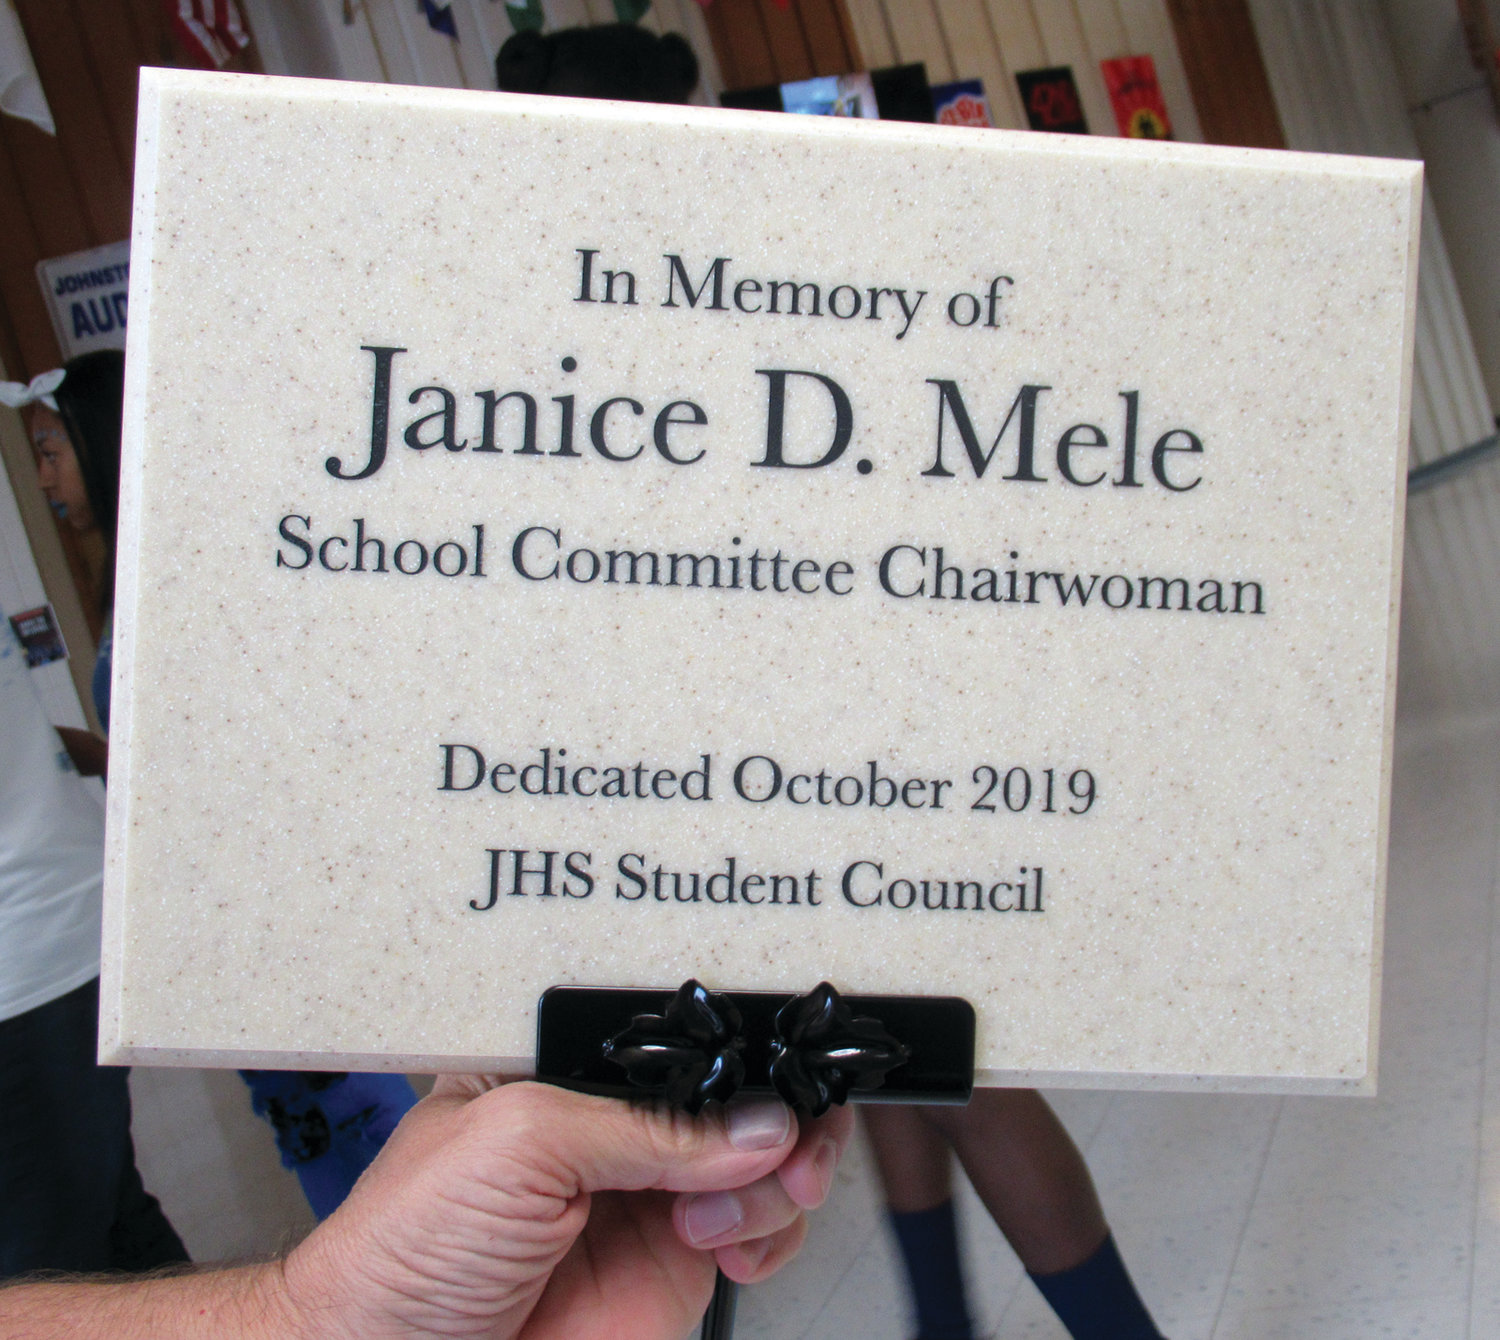 PERMANENT PLAQUE: This is the plaque that the Student Council placed in the ground outside the Johnston High School auditorium and in front of the Japanese maple tree, which was donated by Dino Jacavone of Jacavone's Garden Center as a lasting memorial to the late Janice D. Mele.